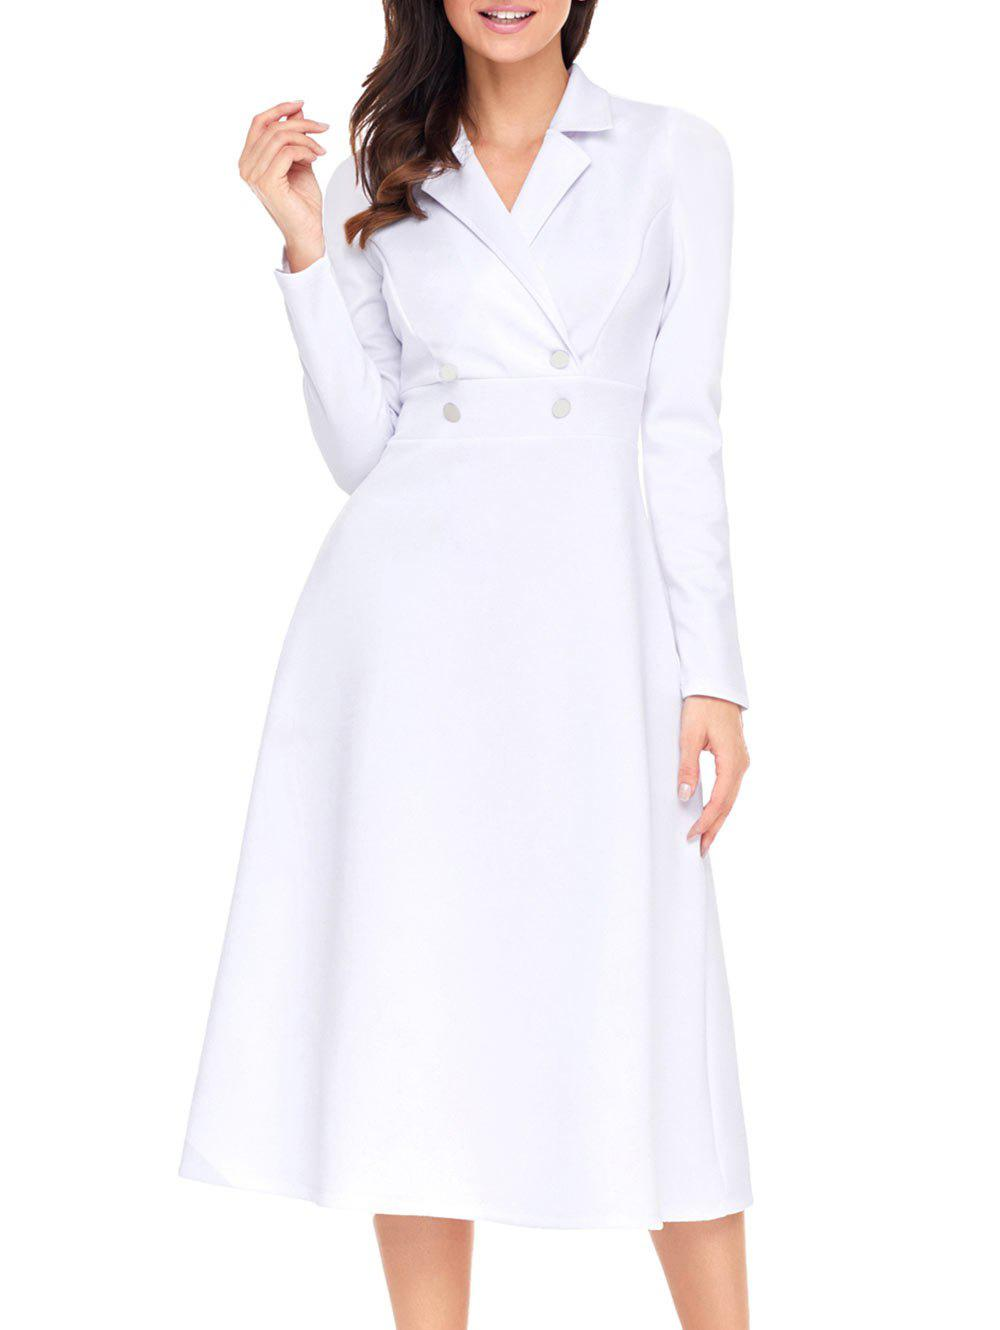 Buy Button A-line Lapel Collar Midi Dress